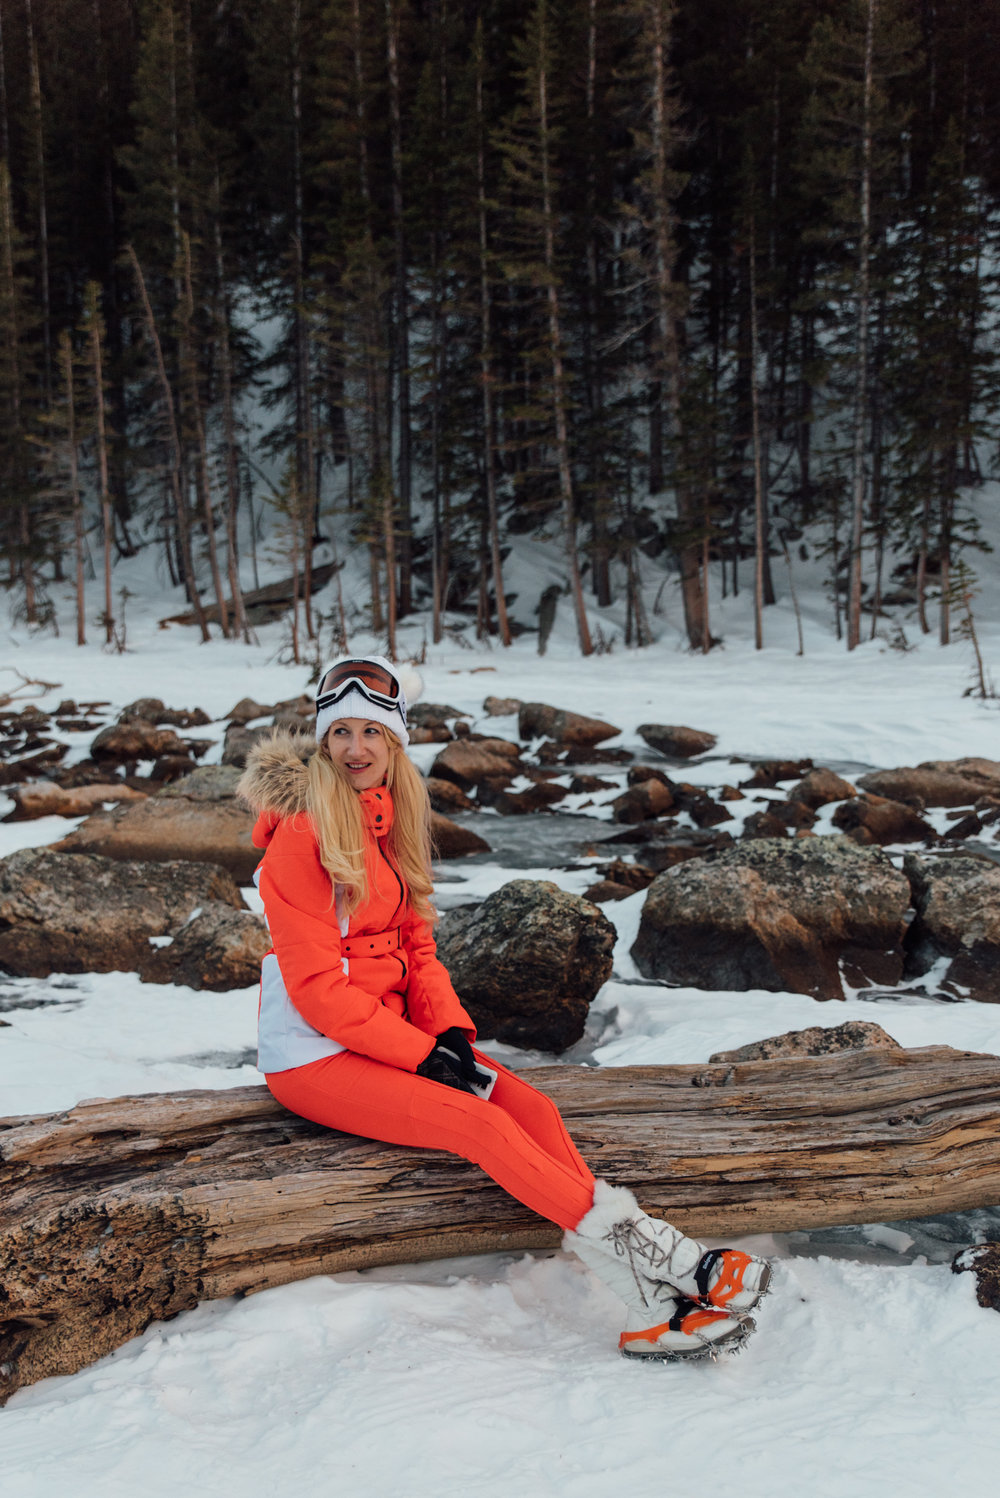 Linda the Nordic Ice Princess, just hanging out taking in the views.